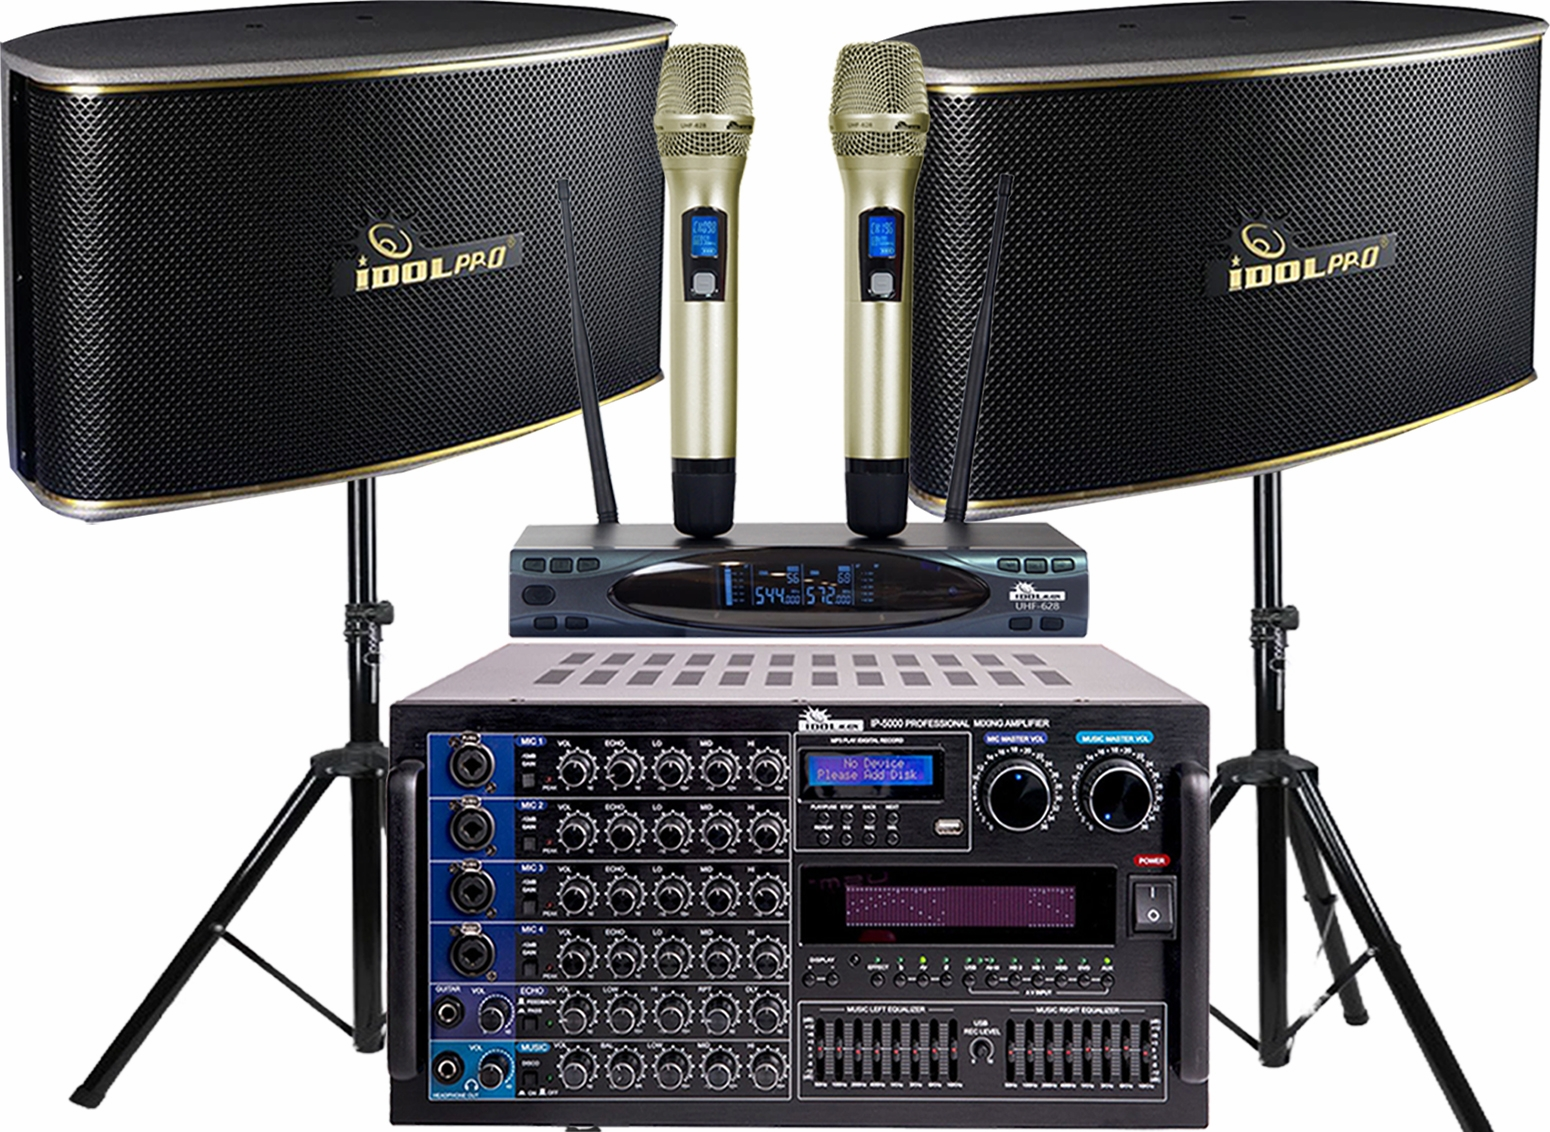 "<font color="" blue"">PACKAGE 2 </font> --IPS-630 Speakers & IP-5000 Mixing Amplifier & UHF-628 Microphone"